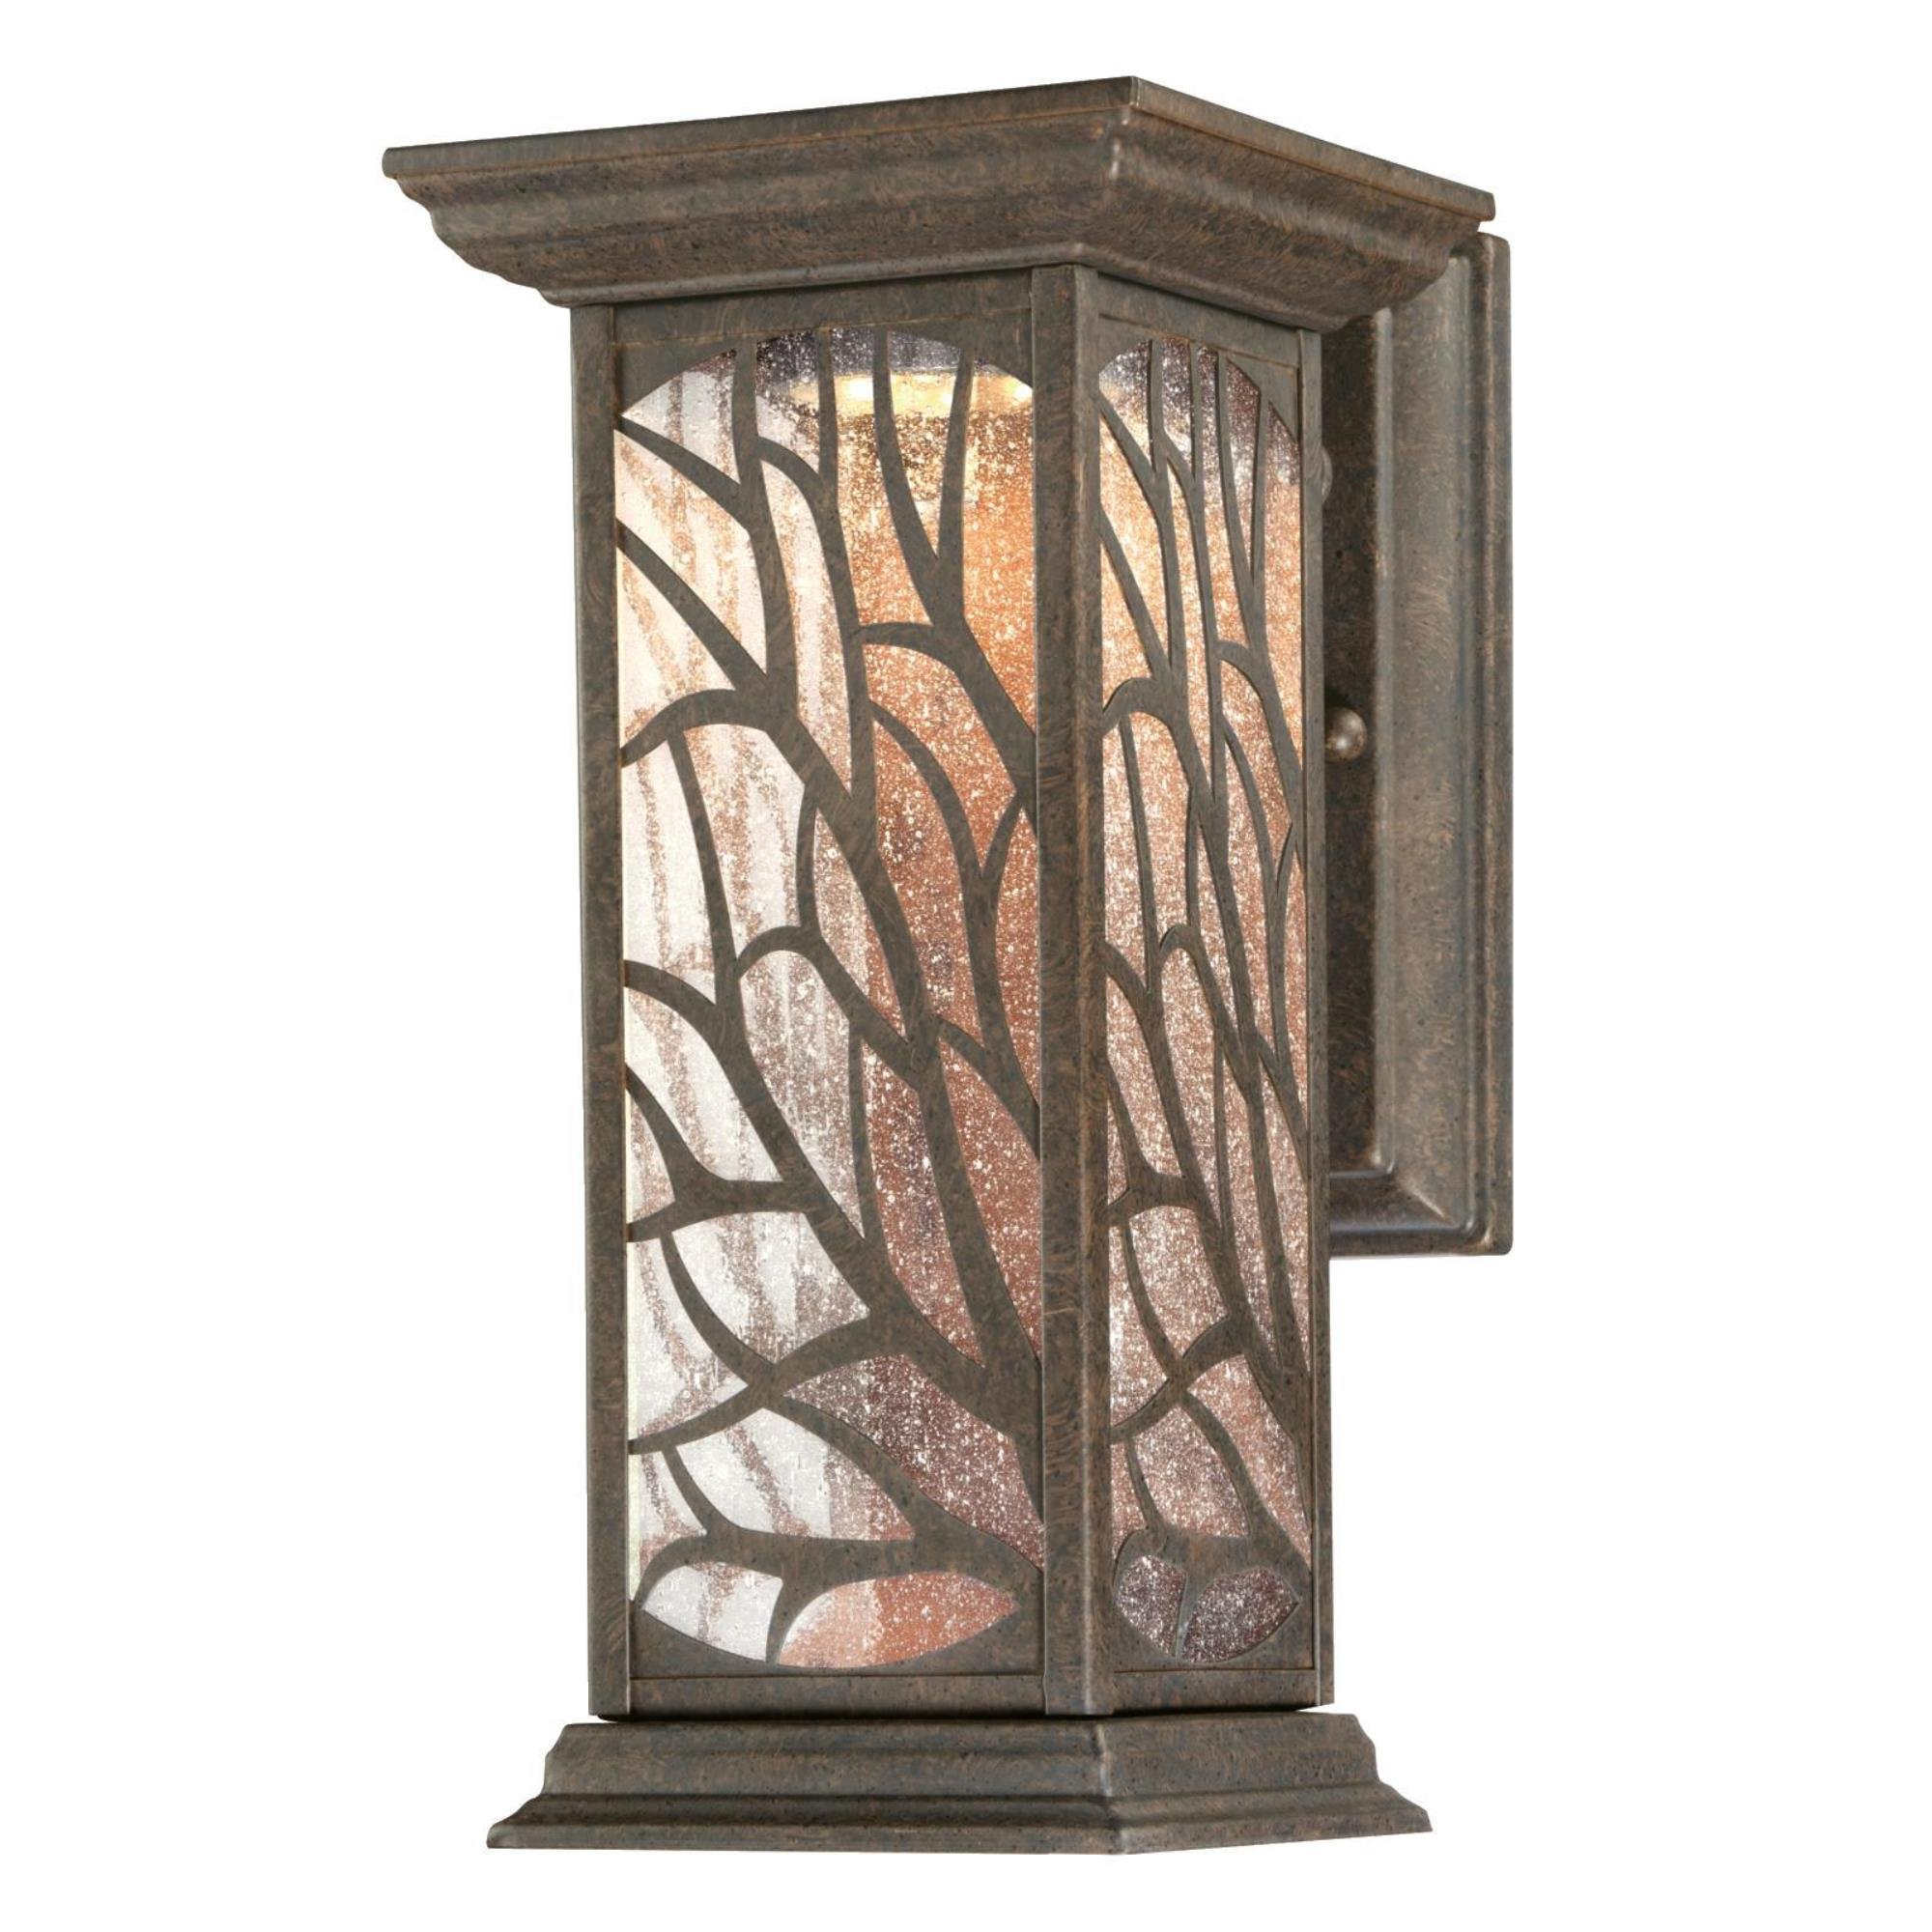 Westinghouse 6312000 Glenwillow One-Light LED Outdoor Wall Lantern with Clear Seeded Glass, Victorian Bronze Finish